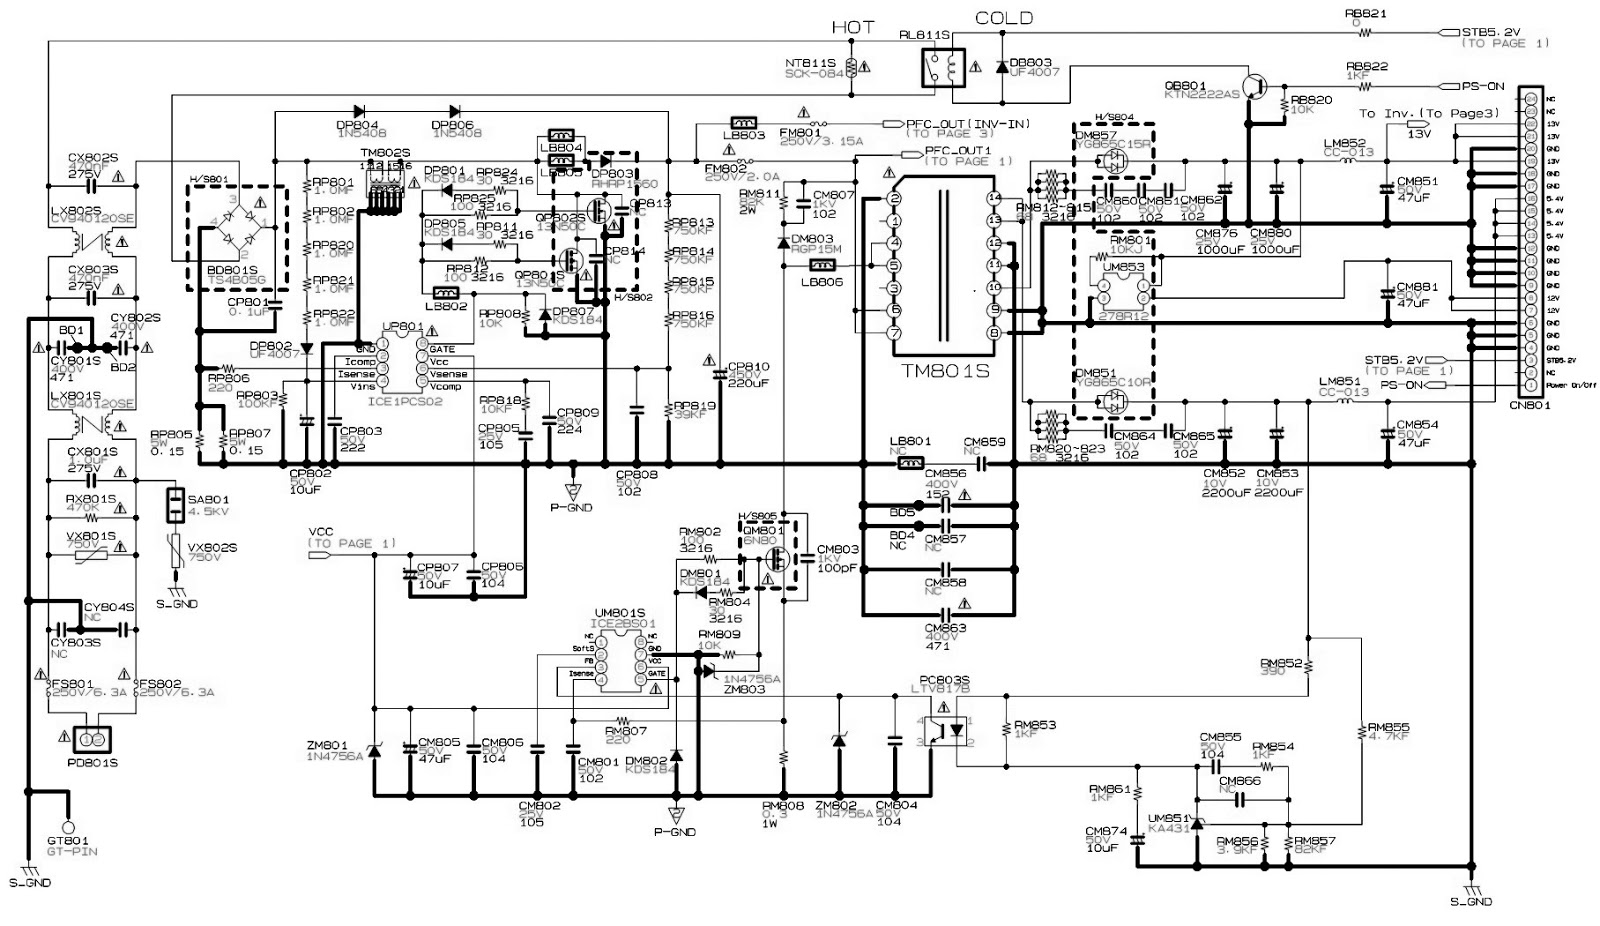 led circuit diagram sky hd box connections some common samsung tv diagrams learn basic